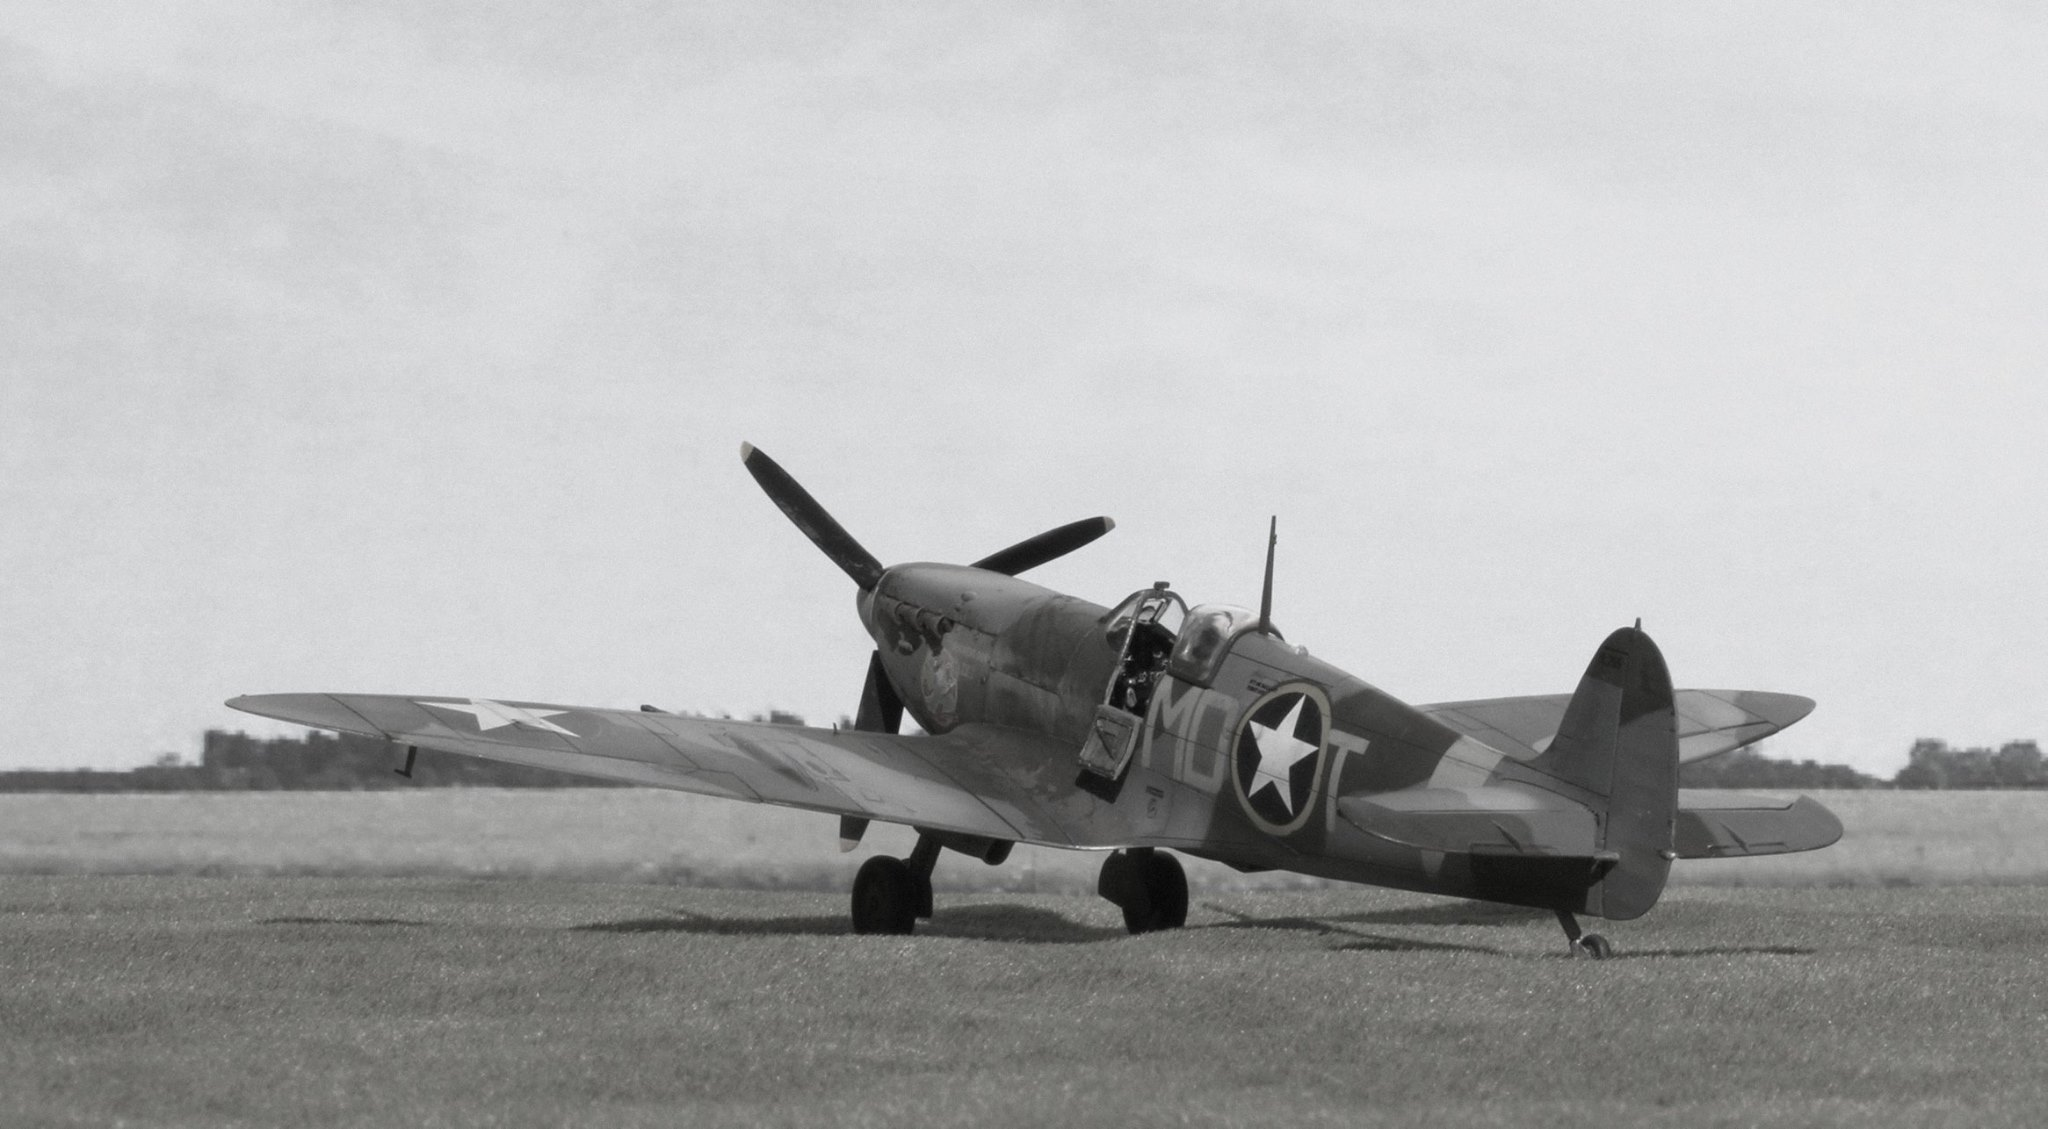 Spitfire Mk.Vb BL255 flown by Don Gentile 336th Fighter Squadron, 4th Fighter Group, USAAF at Debden August 1942